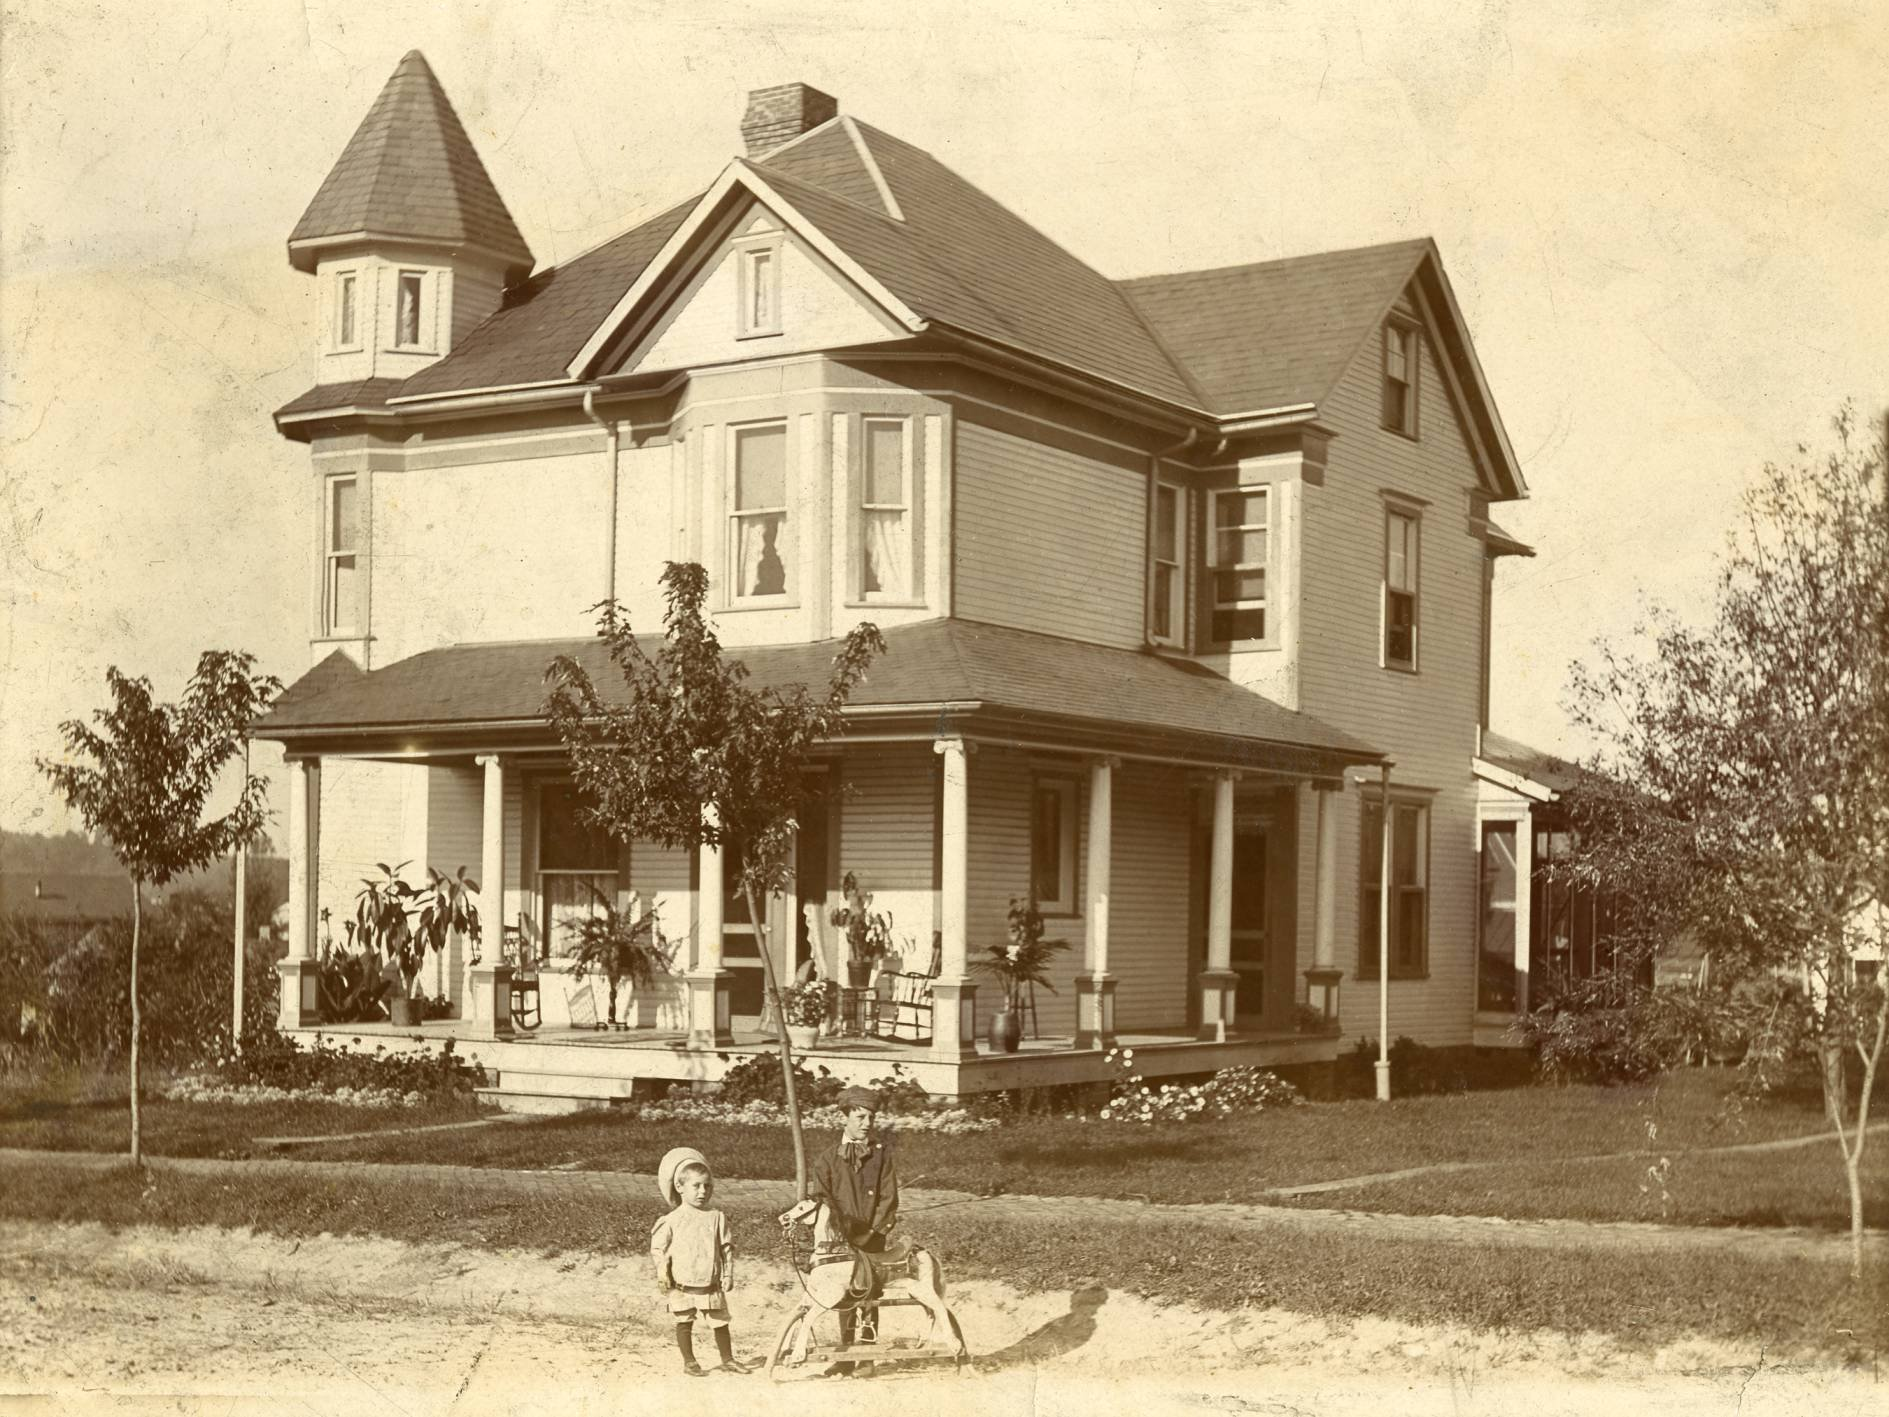 The J.E. Sellers house on East Street, Middlebourne, as it appeared in its heyday. Pictured are Robert and Russell Sellers, sons of the original owner. Photo courtesy of Rhonda Sellers Baro.